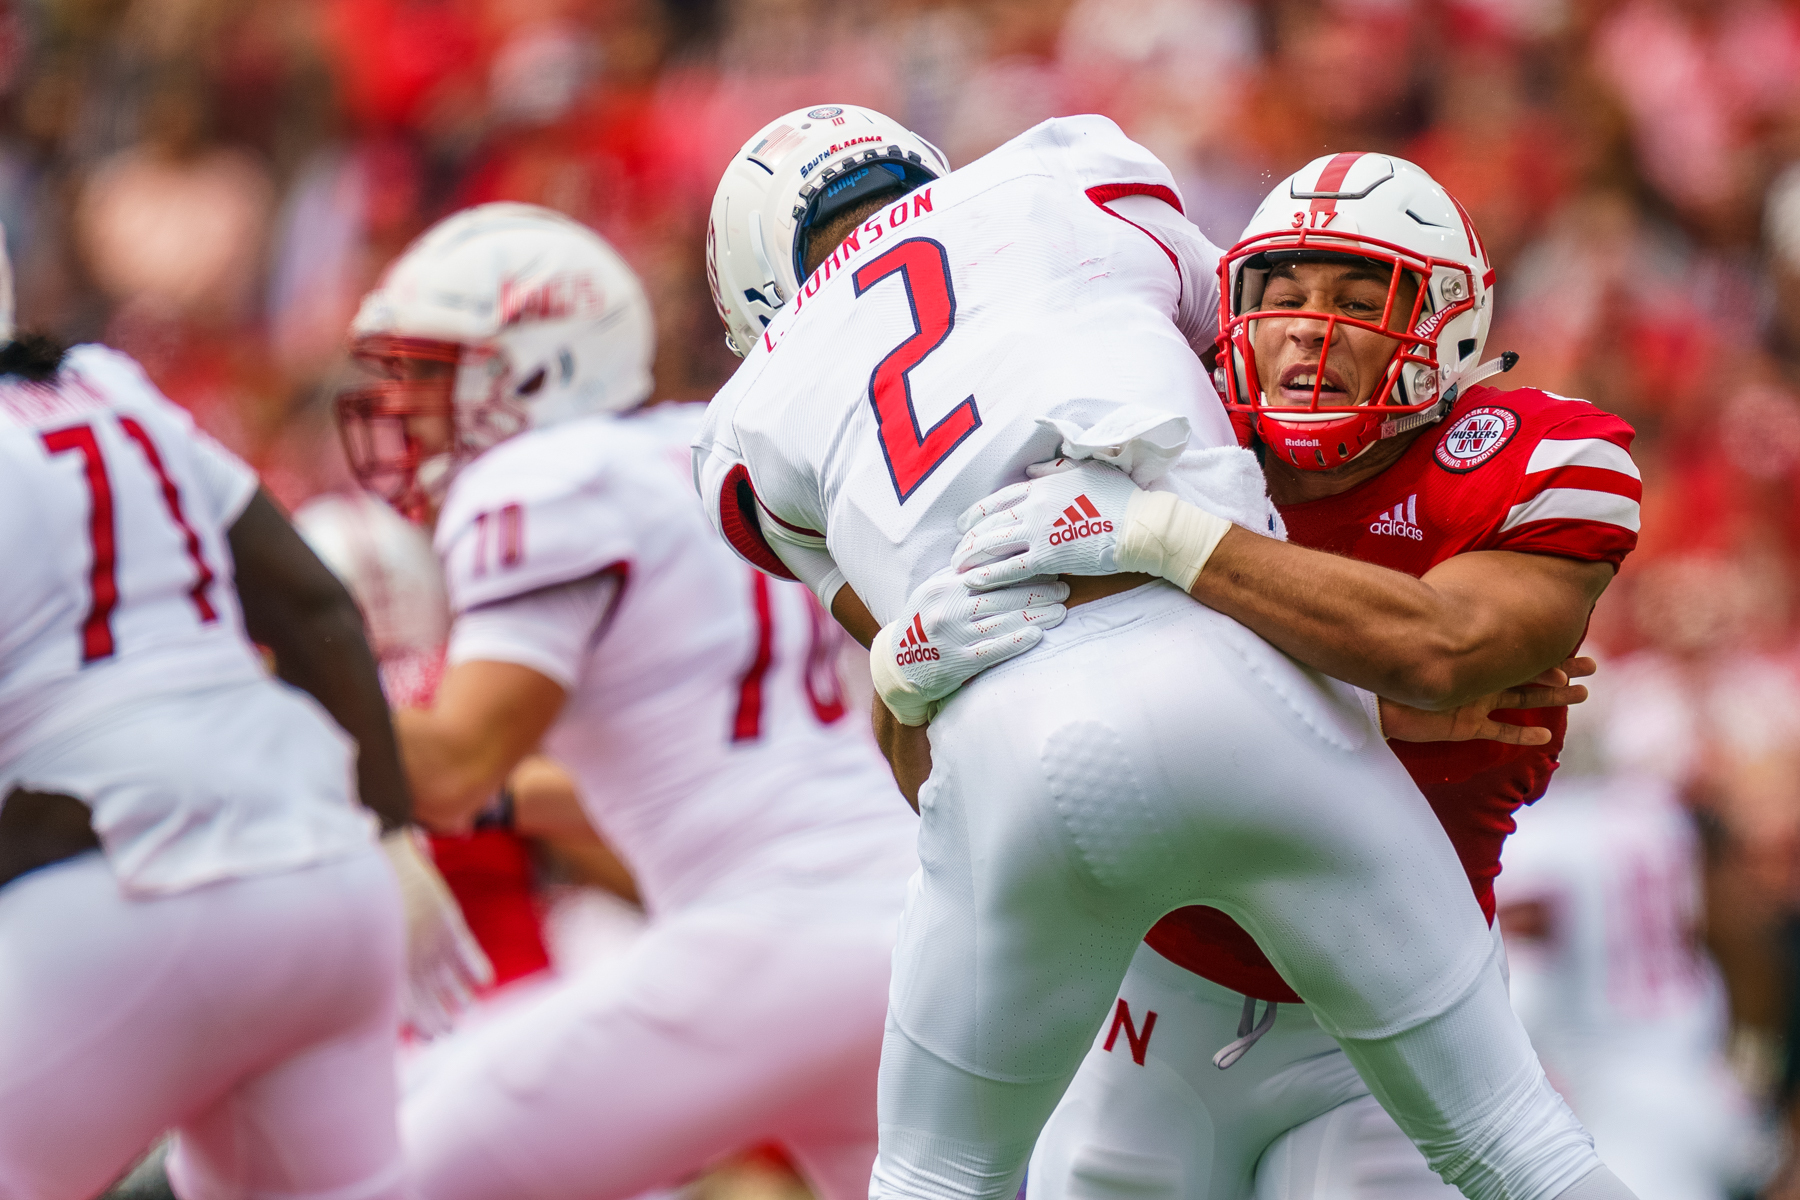 Collin Miller #31 of the Nebraska Cornhuskers pressures Cephus Johnson #2 of the South Alabama Jaguars during Nebraska's 35-21 win over South Alabama at Memorial Stadium in Lincoln, Nebraska on Aug. 31, 2019.   © Aaron Babcock